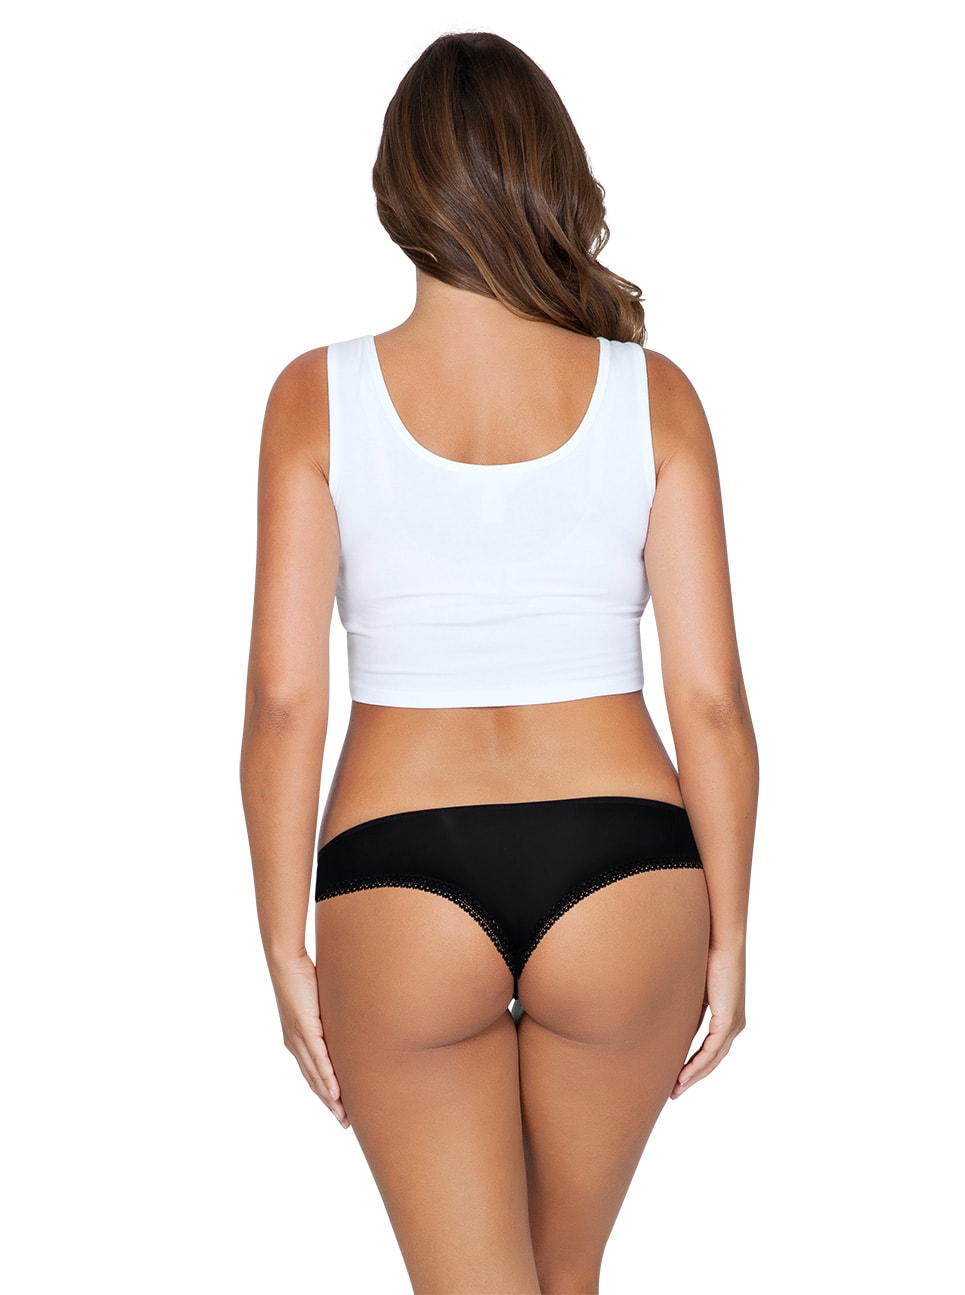 ParfaitPanty Thong PP401A Black Back - So Lovely Thong Black PP401